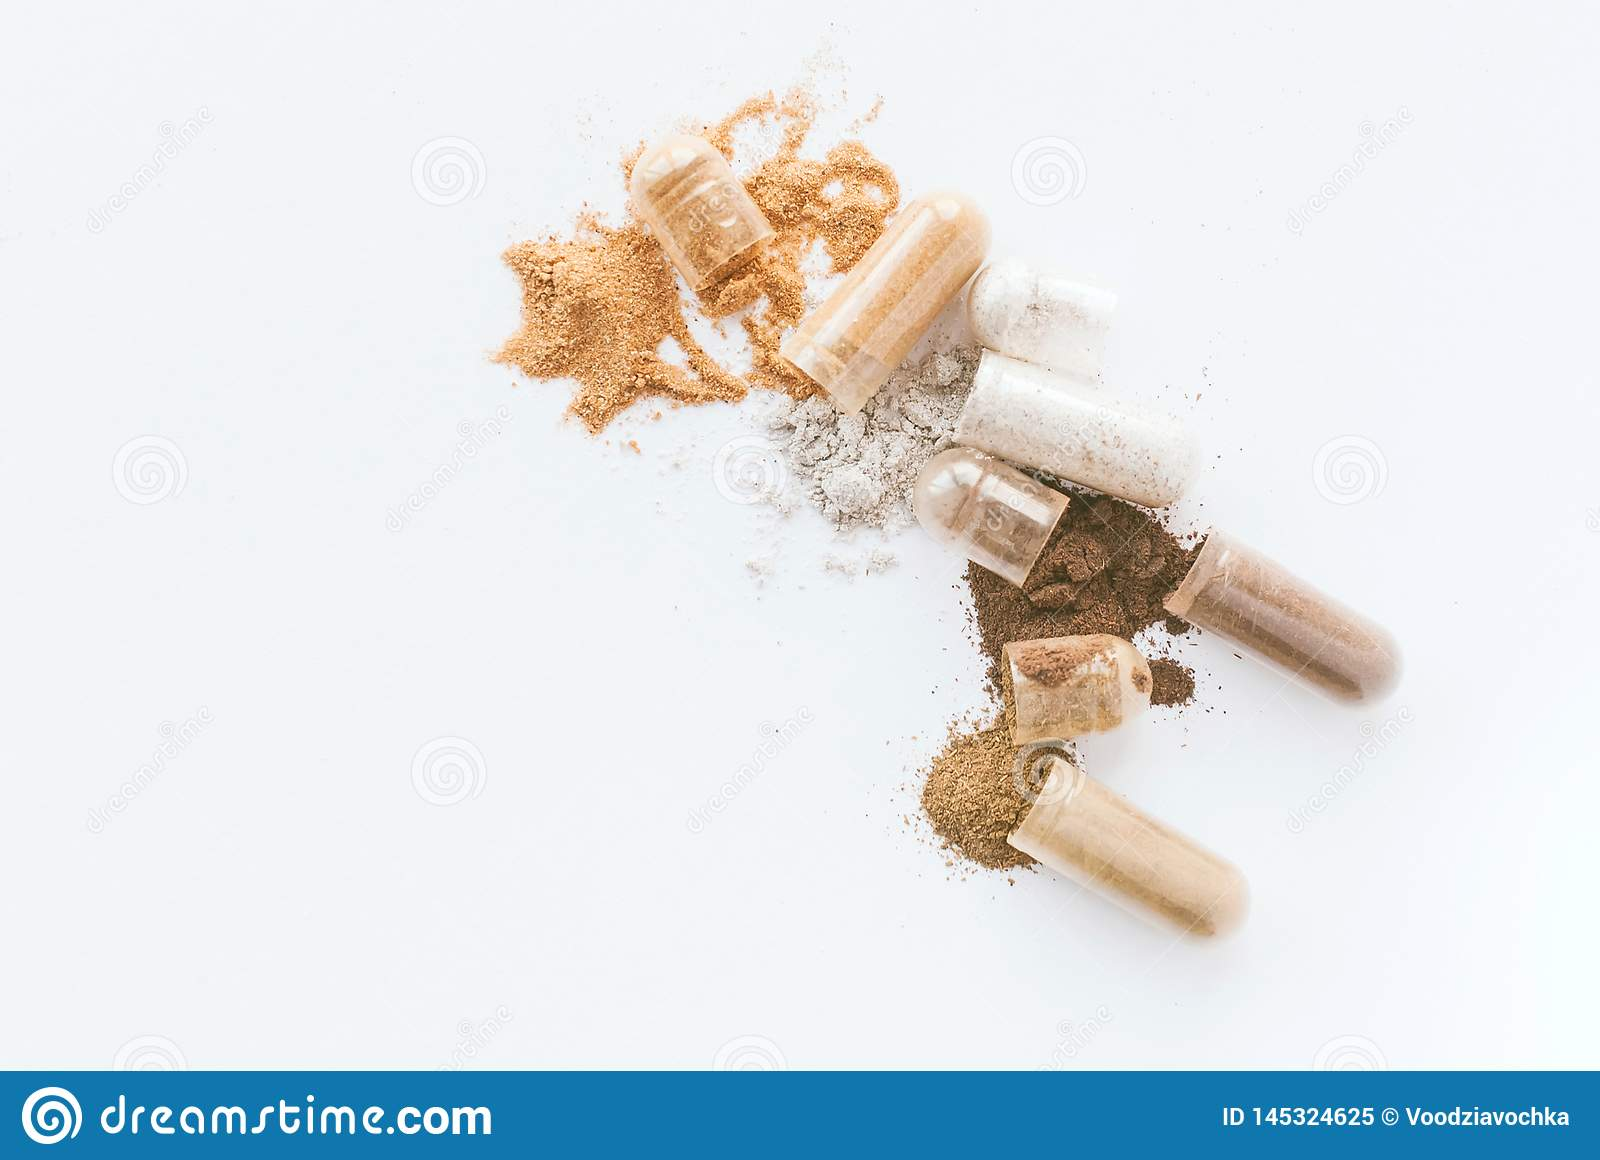 Herbal pills. Open Herbal capsules and powder on white background. Copyspace